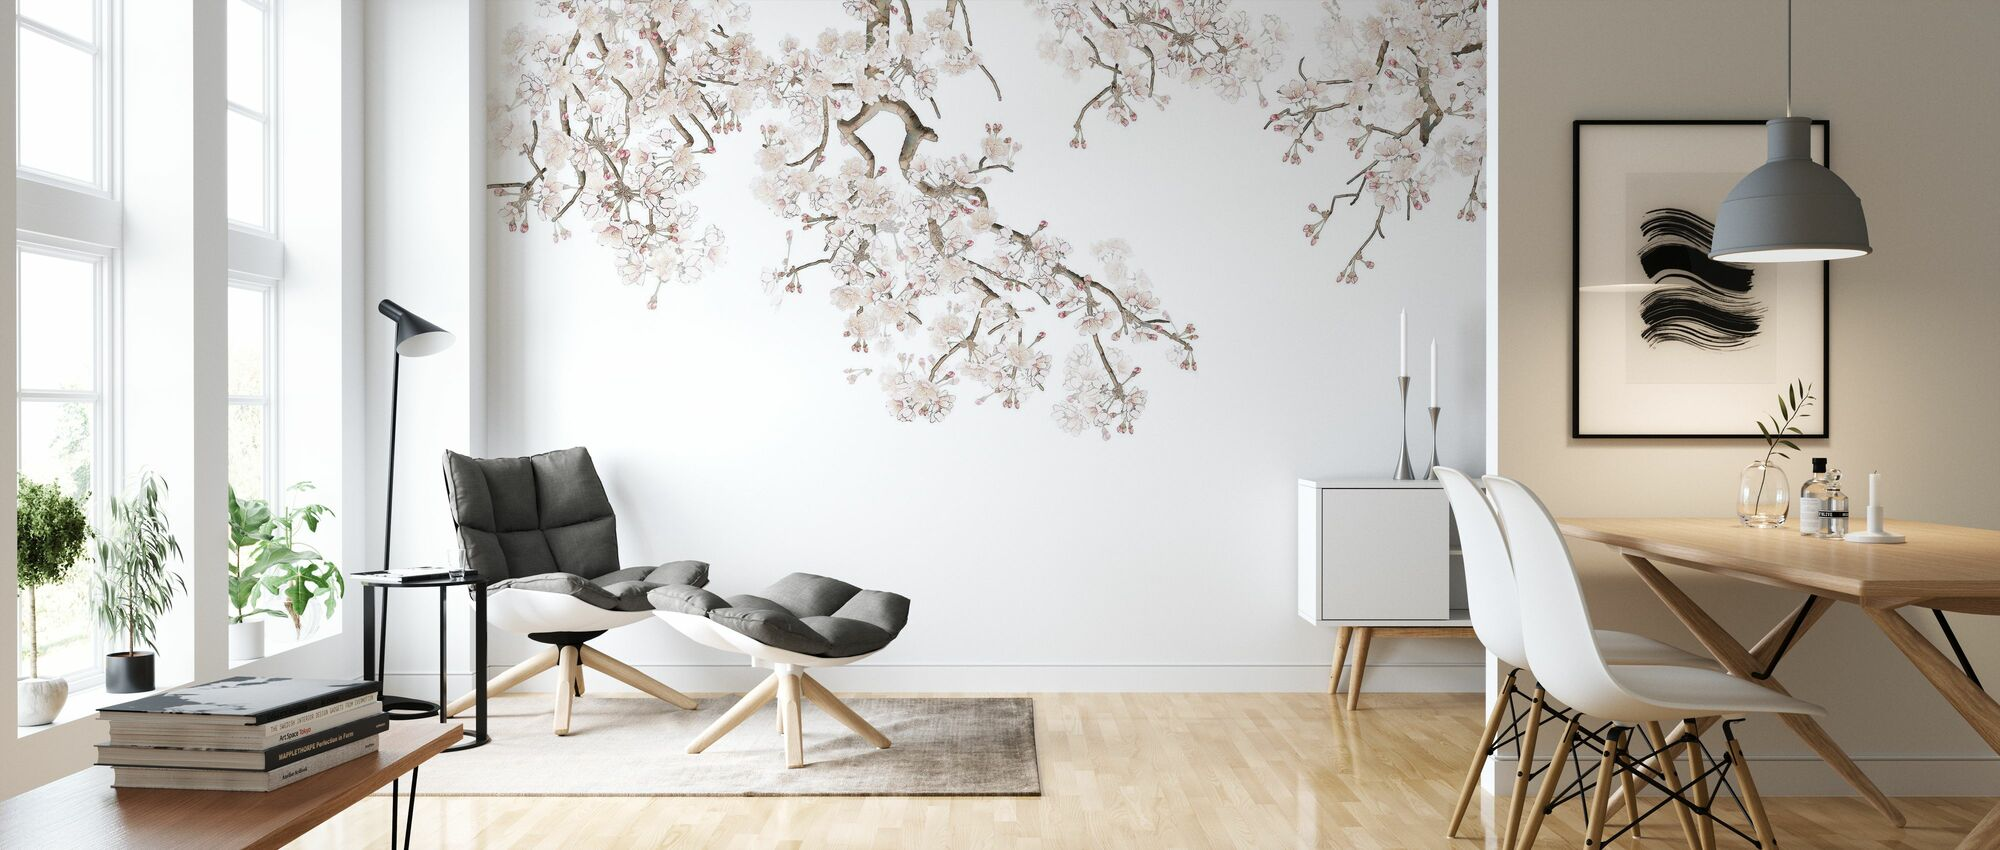 Hanging Branches - Wallpaper - Living Room